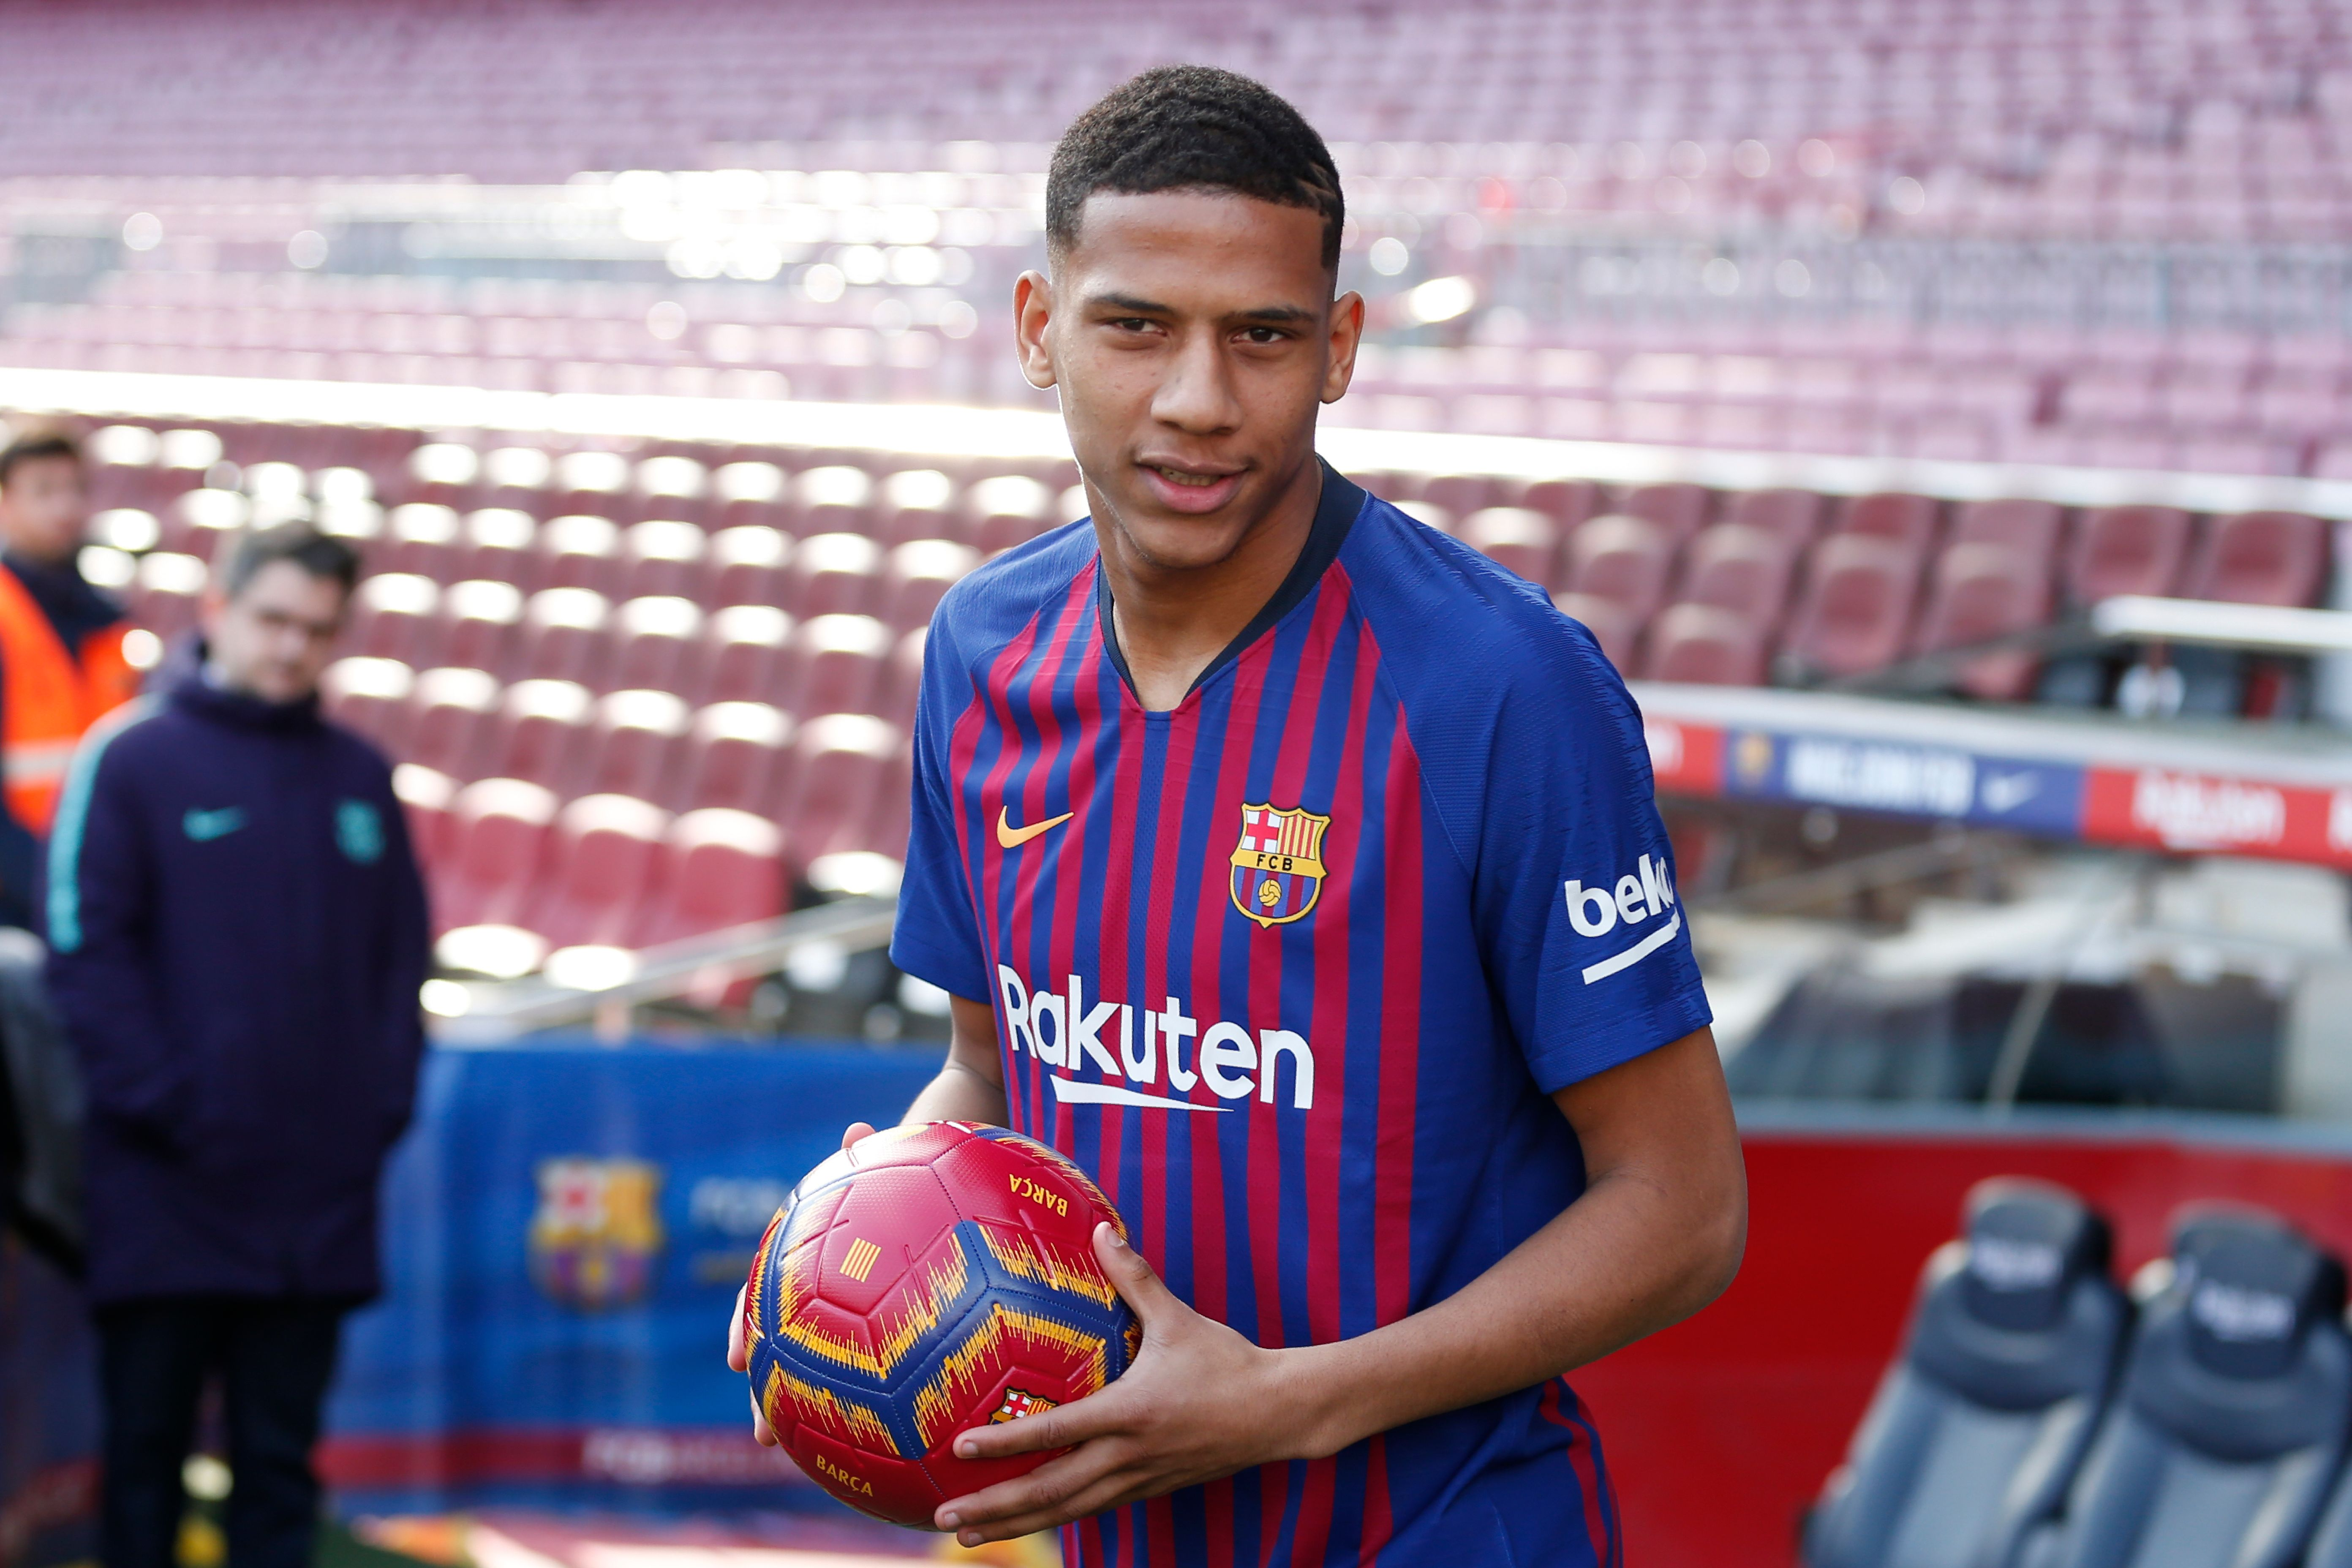 Todibo is courting interest from several clubs (Photo by PAU BARRENA/AFP/Getty Images)